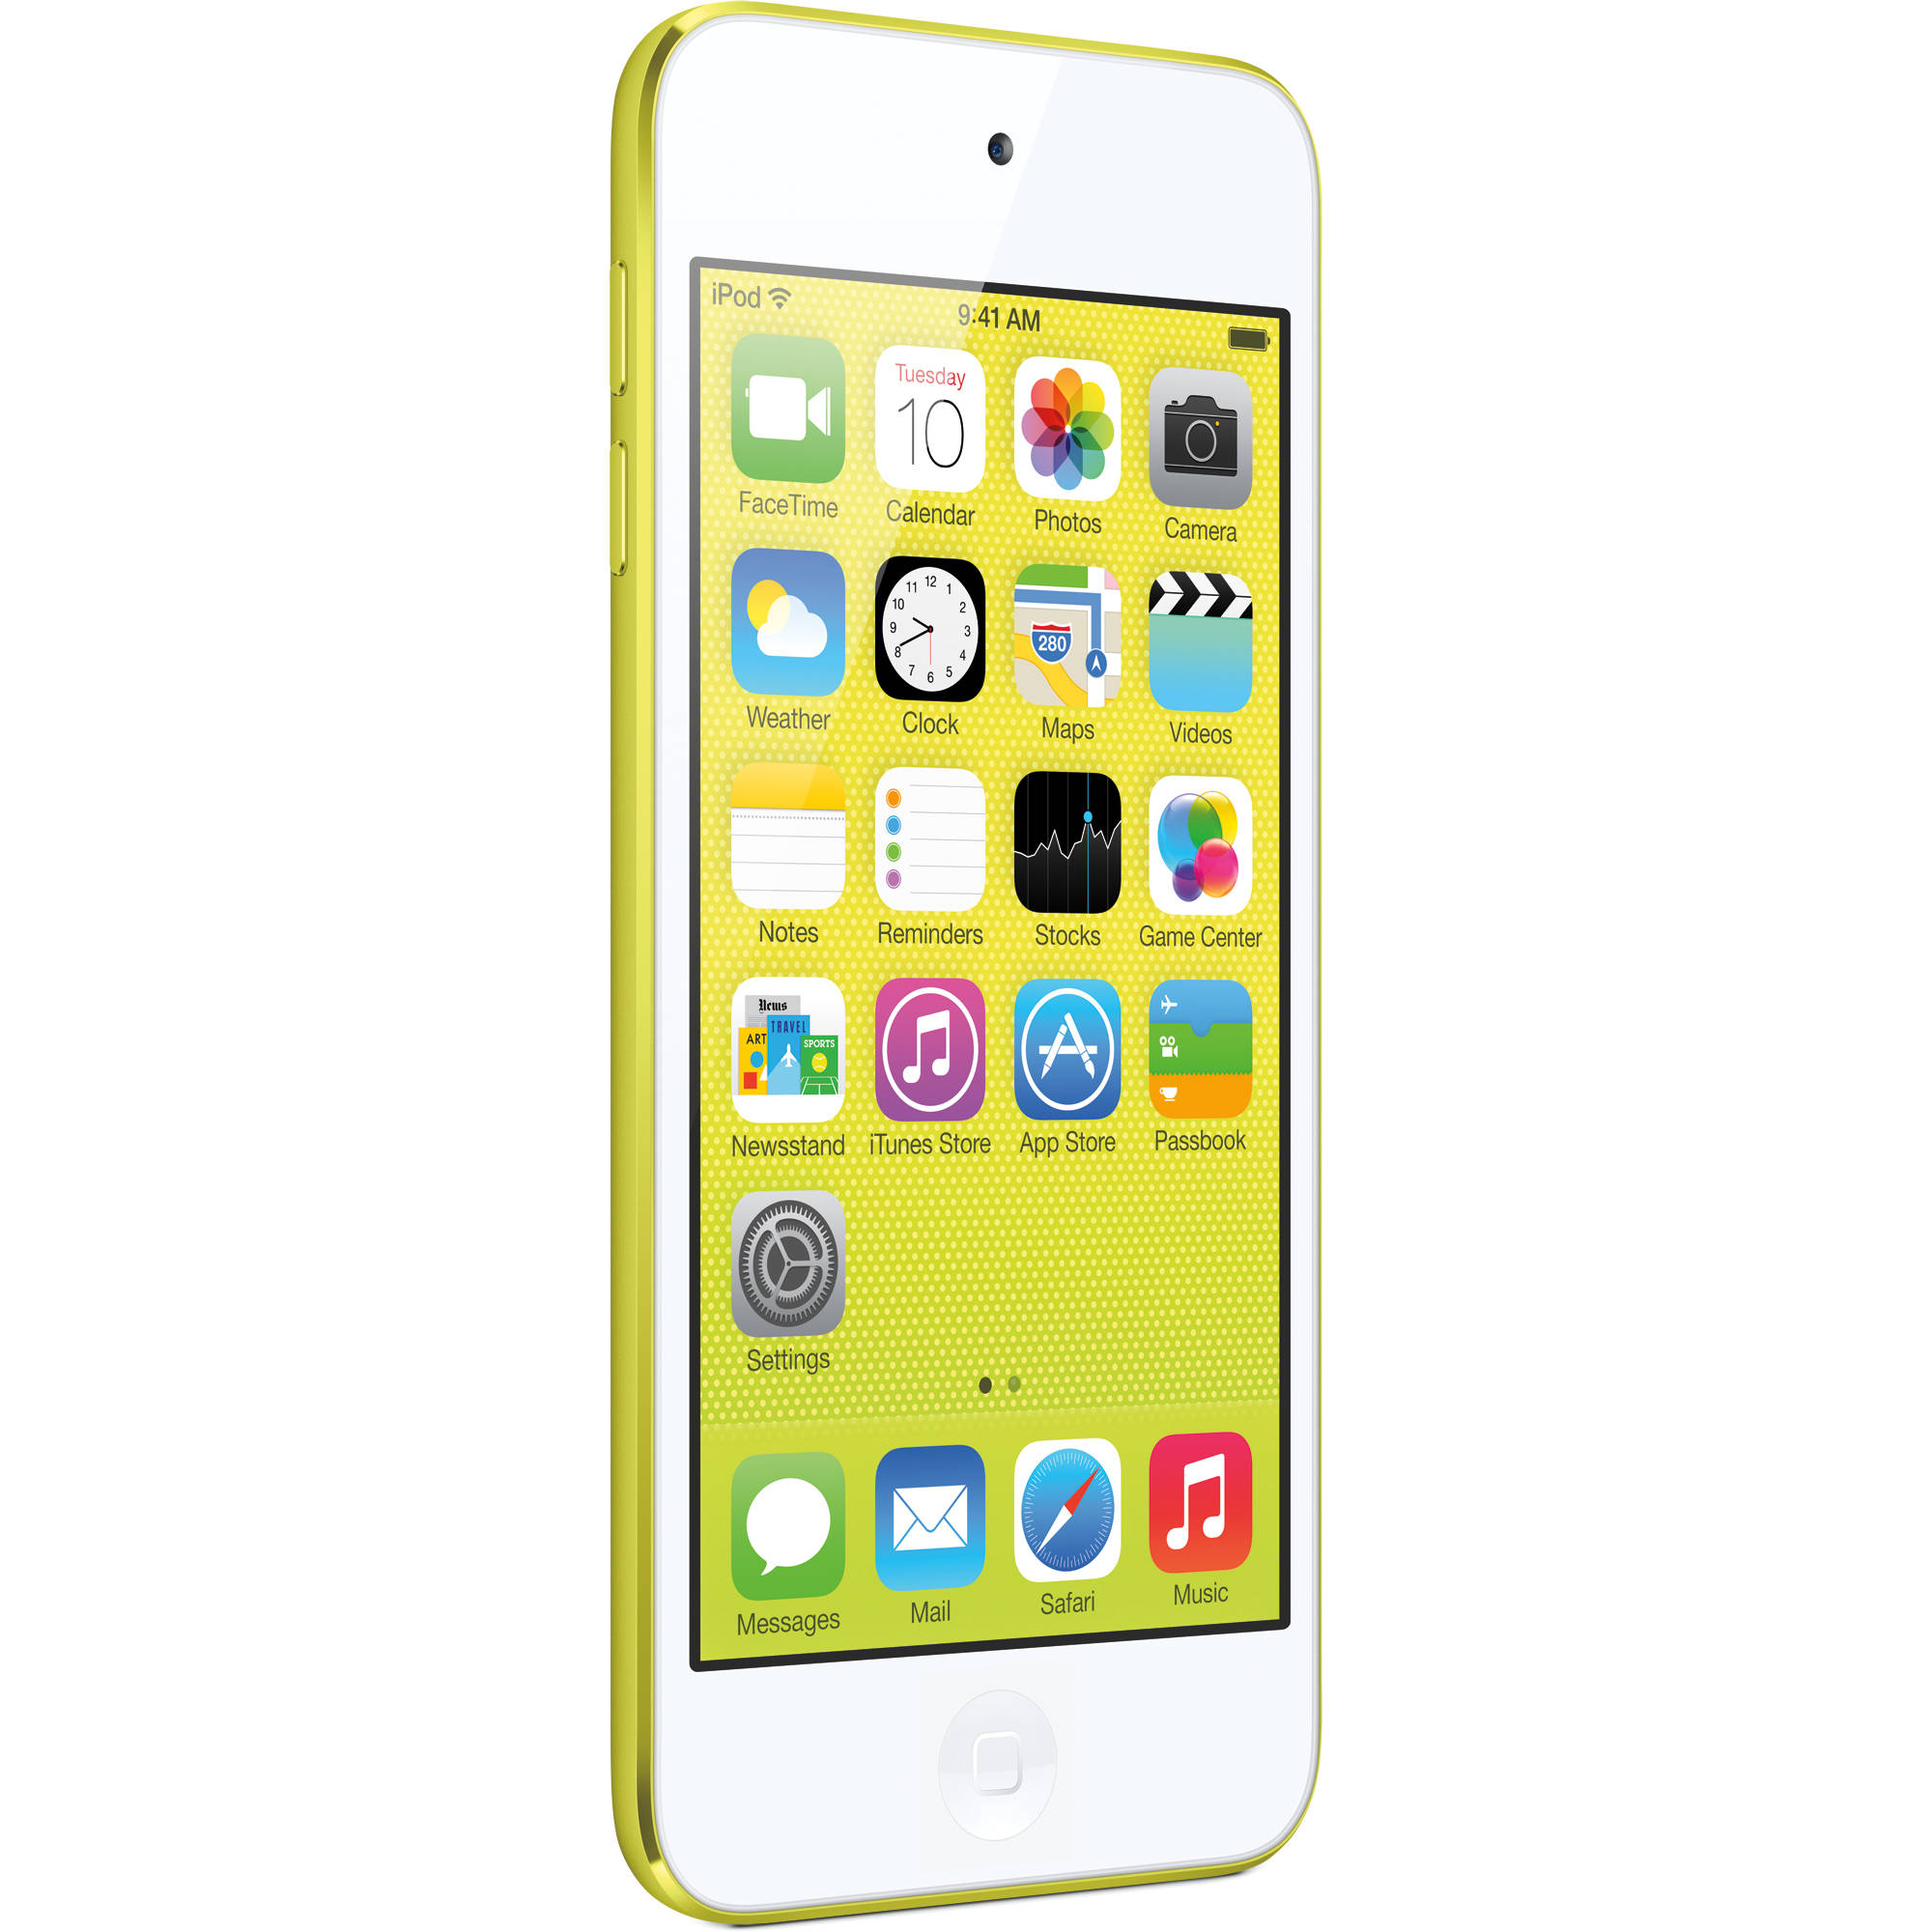 Apple iPod Touch 64GB Yellow (5th Generation) (Discontinu...